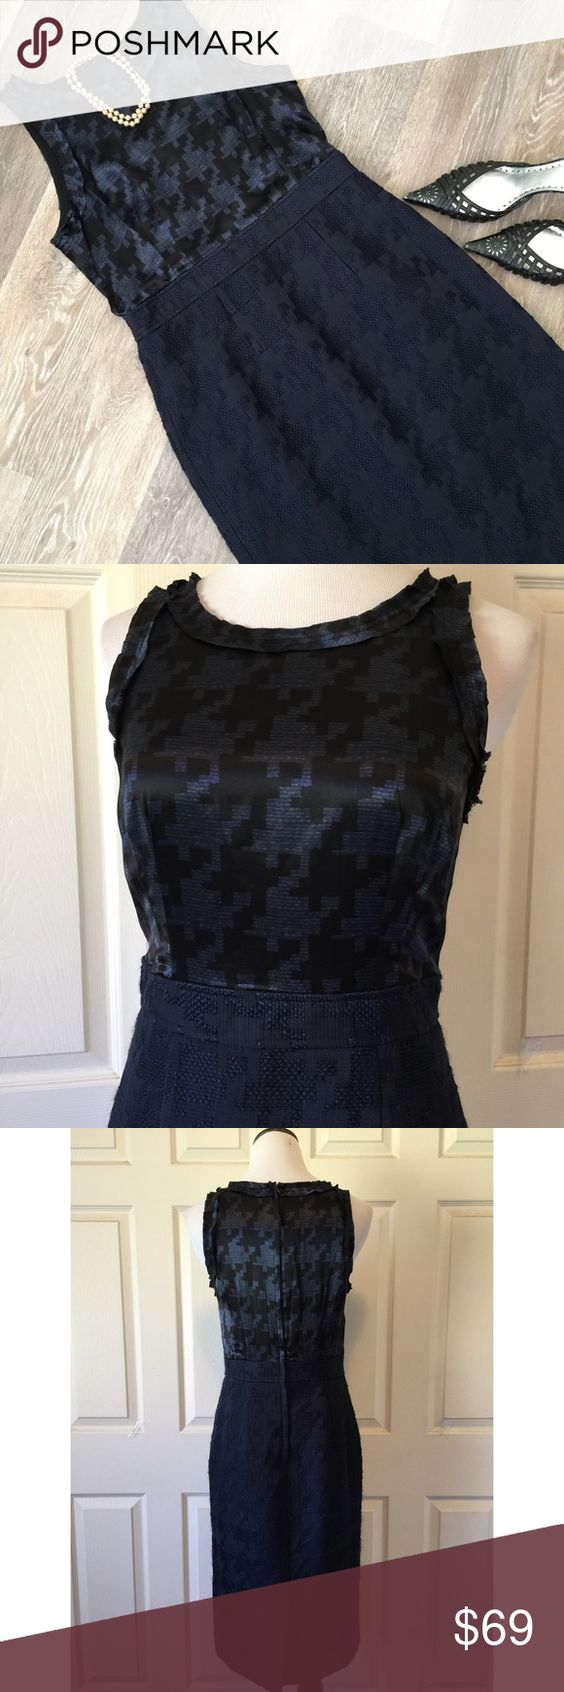 """BANANA REPUBLIC MAD MEN COLLECTION DRESS. Gorgeous Banana Republic Mad Men Collection dress, in wonderful condition. Pencil skirt bottom In boucle and a silk top. Beautiful exploded tonal houndstooth pattern on both top and bottom of the dress. Size 8: 43"""" length, 30"""" waist, 36"""" bust. Fabric content:  Shell- upper 100% Silk, lower 55% polyester, 45% acrylic,  5% spandex. Lined and  dry clean only. No trades and a smoke free home. Thanks for stopping by, we are a tag away if we can be of…"""